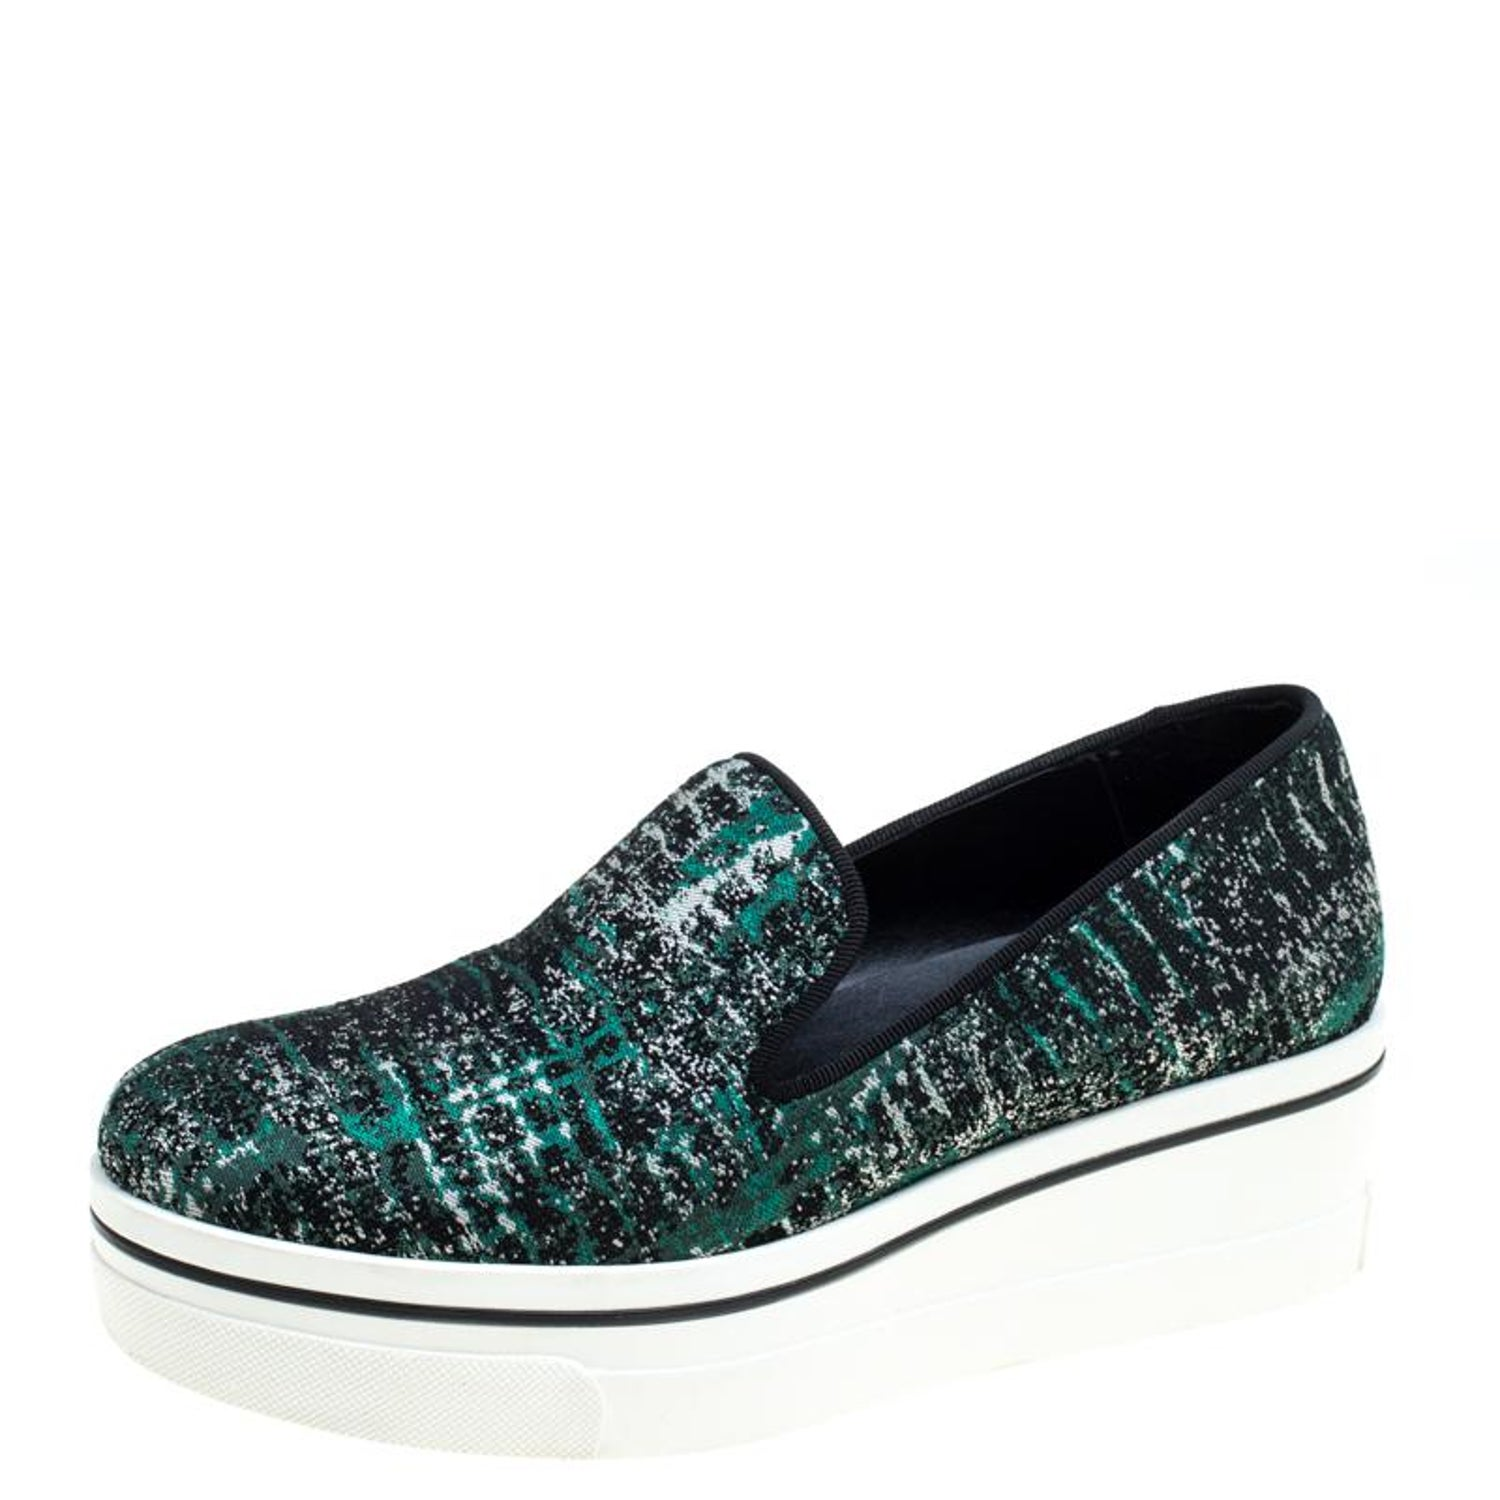 1e6c48afa48e Stella McCartney Green/Black Monochrome Fabric Platform Slip On Sneakers  Size 38 For Sale at 1stdibs